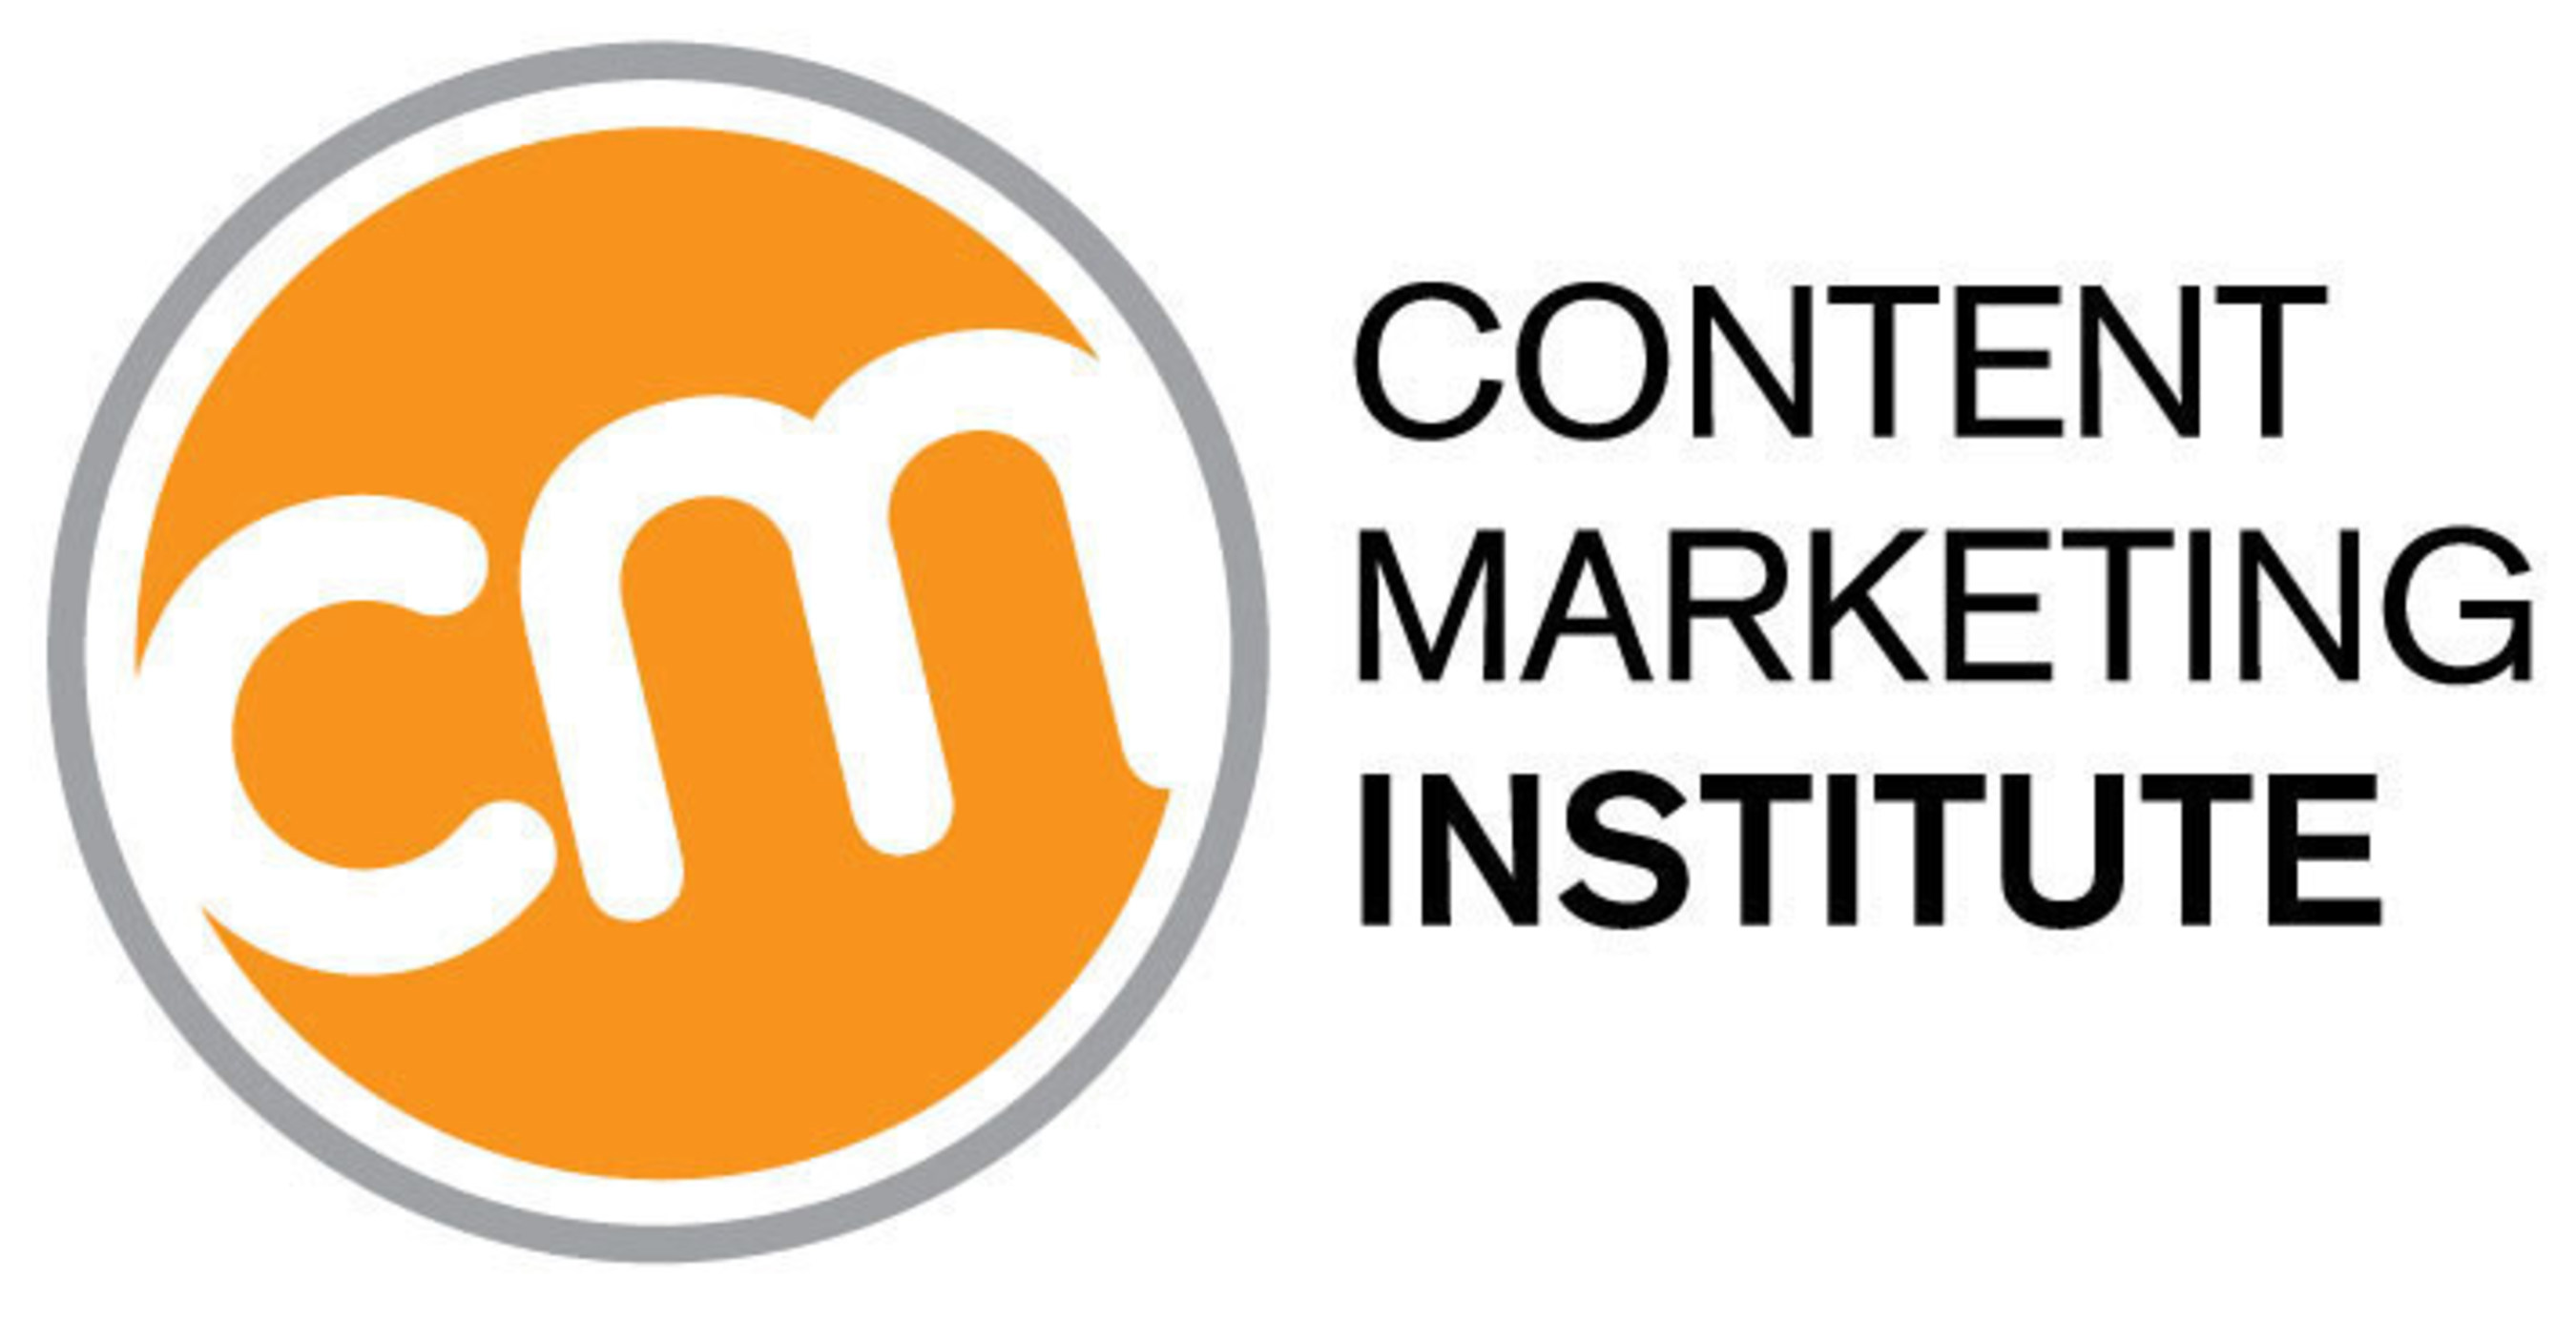 Content Marketing Institute announces winners in 2015 Content Marketing Awards